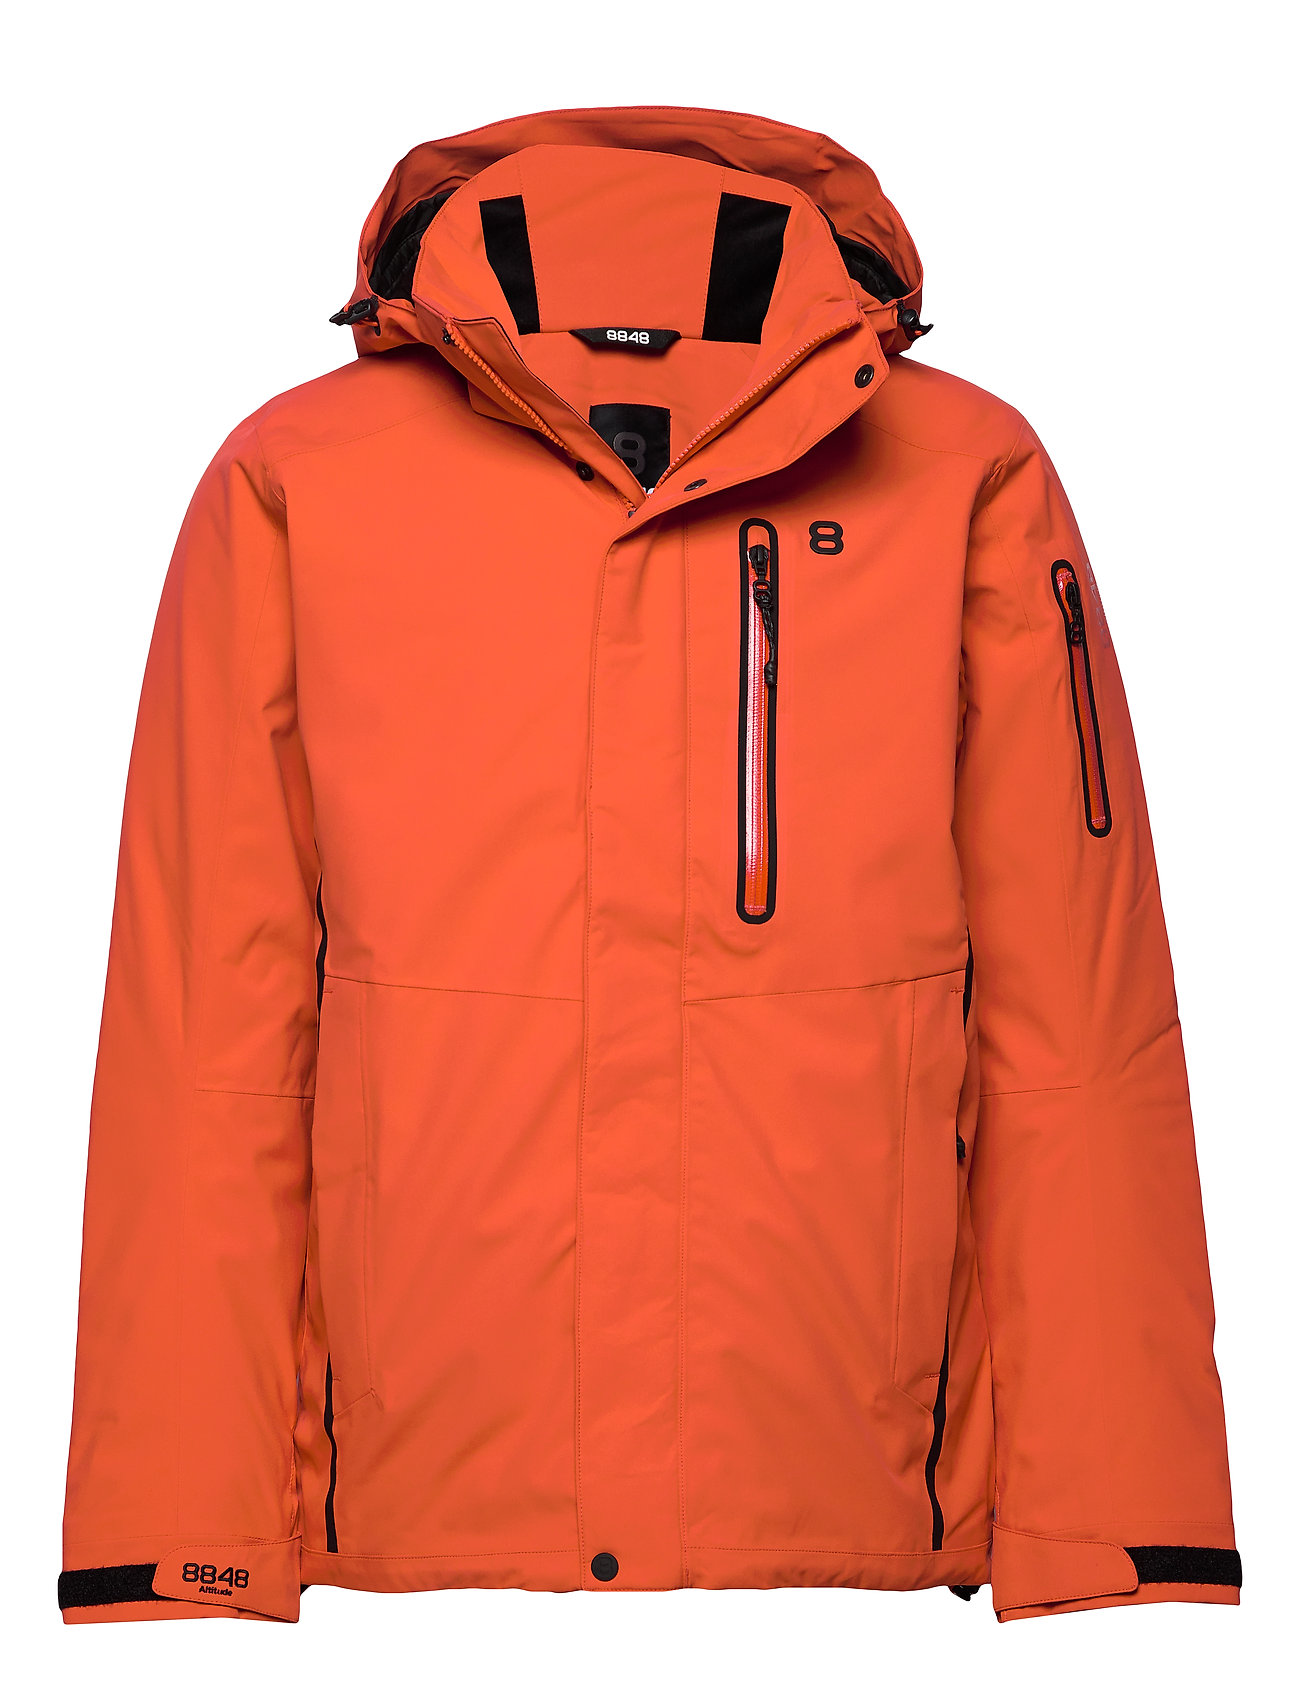 8848 Altitude Castor Jacket - RED CLAY